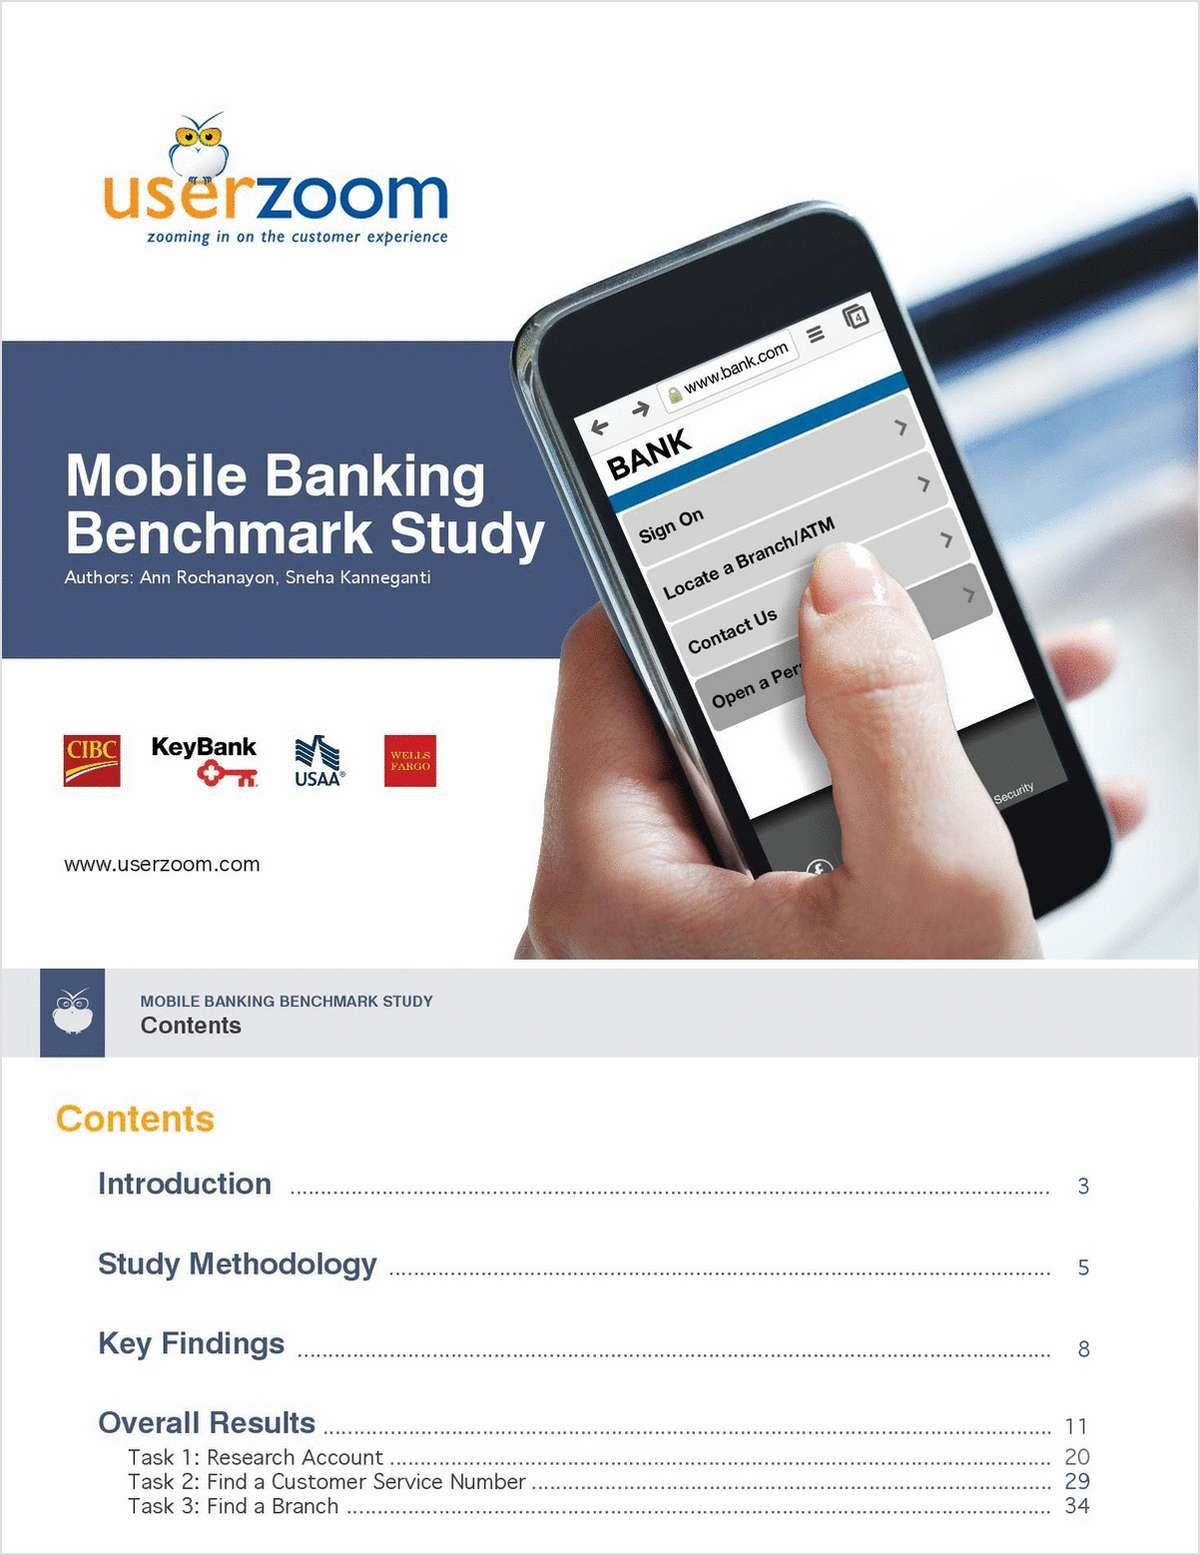 Mobile Banking Benchmark Study: Which Bank Offers the Best Mobile Experience?